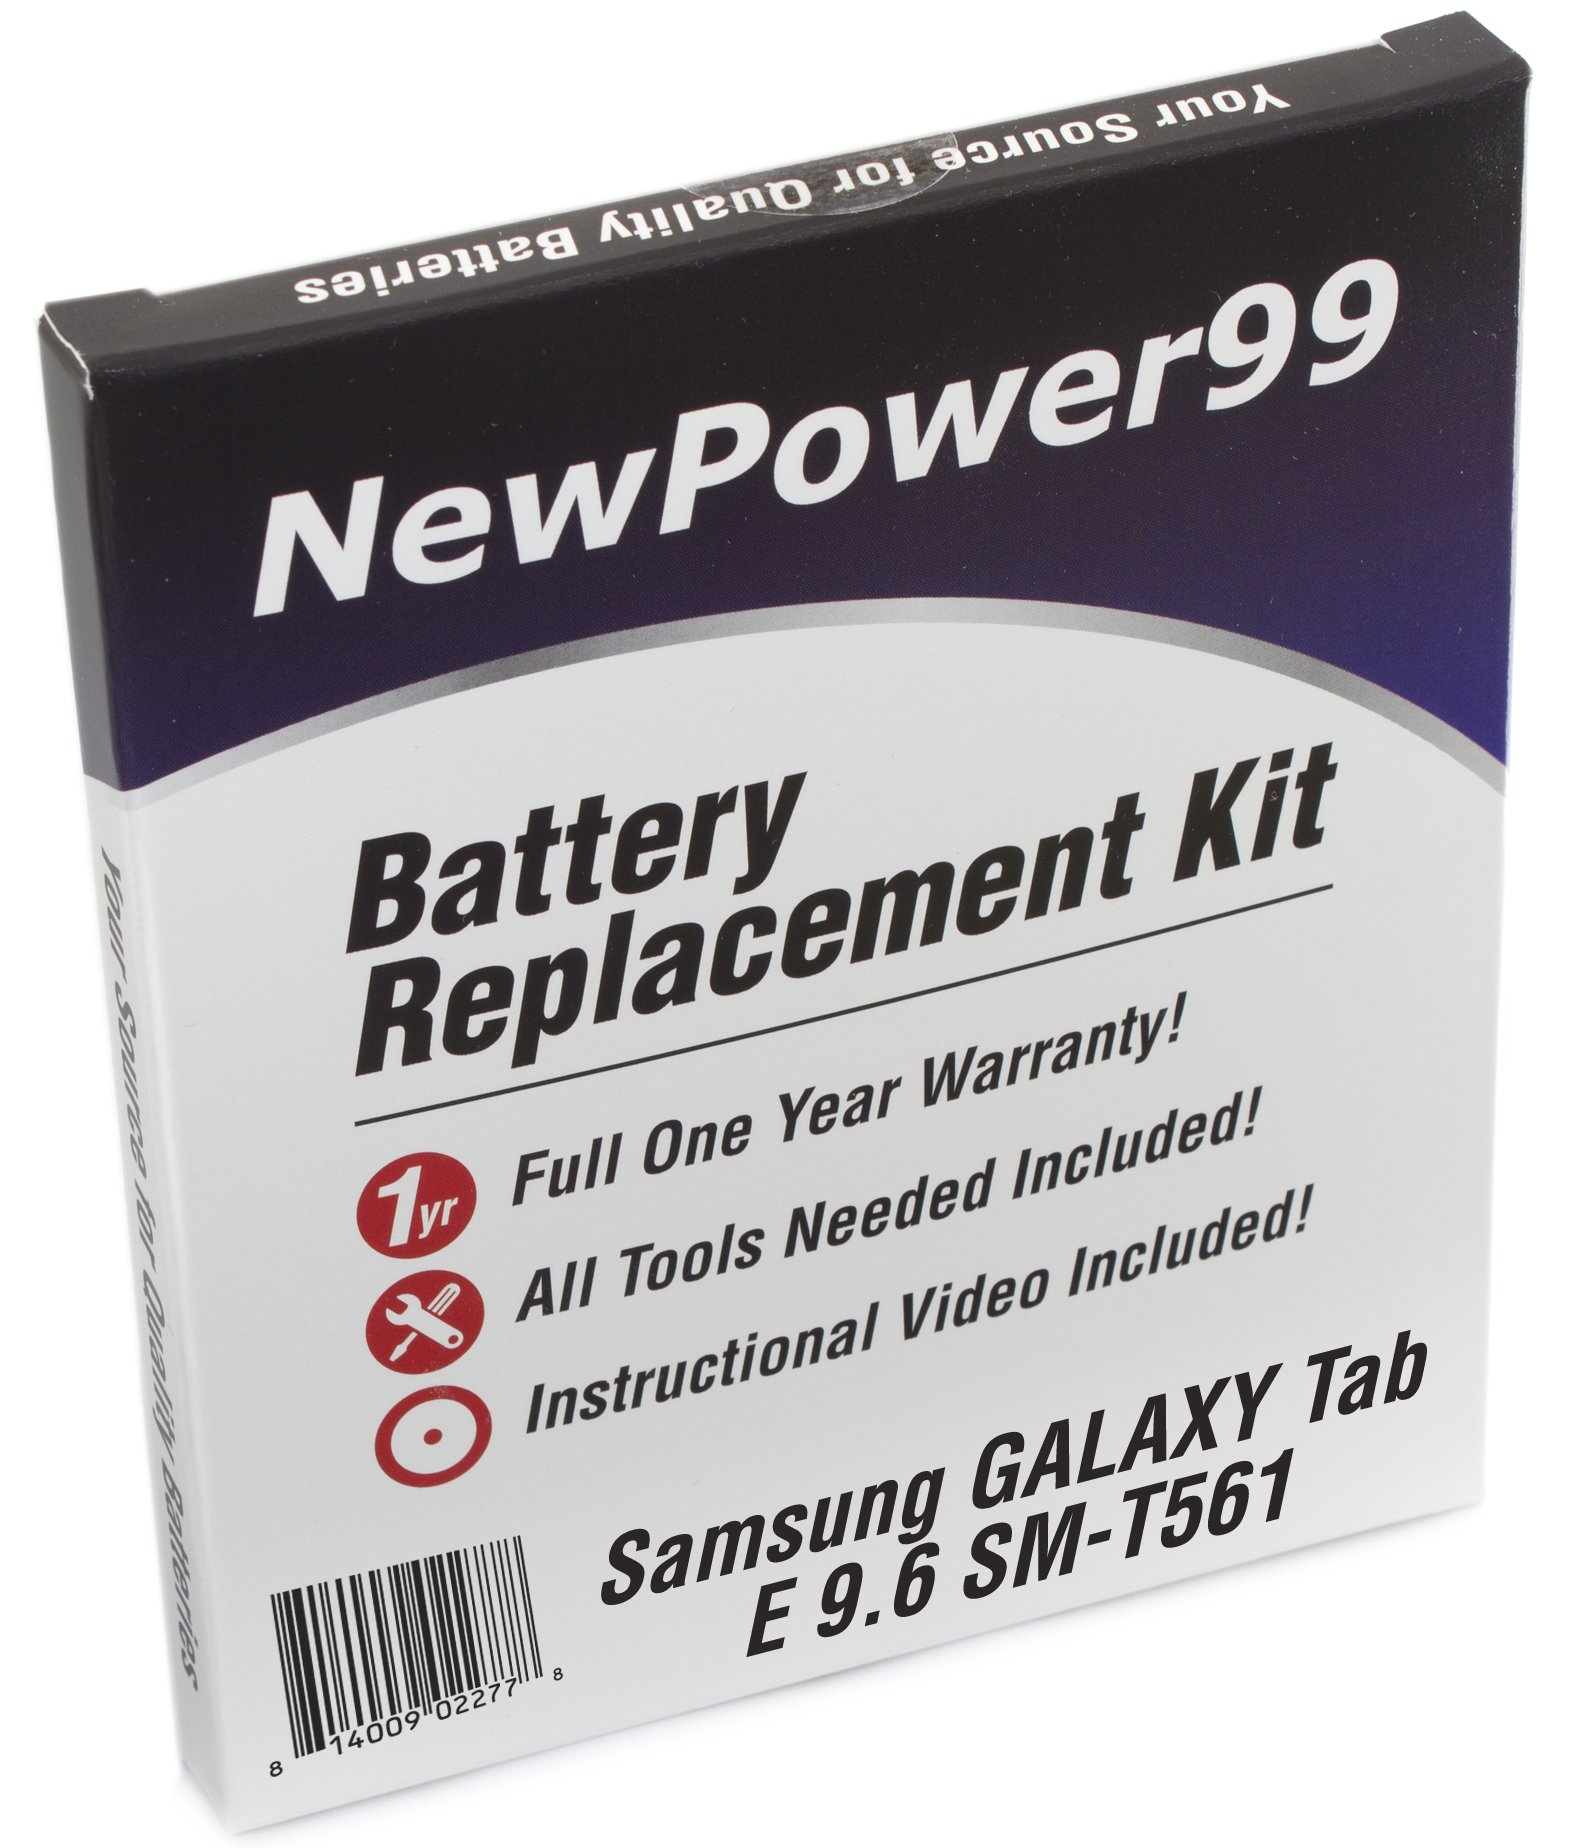 NewPower99 Battery Replacement Kit with Battery, Instructions and Tools for Samsung Galaxy Tab E 9.6 SM-T561